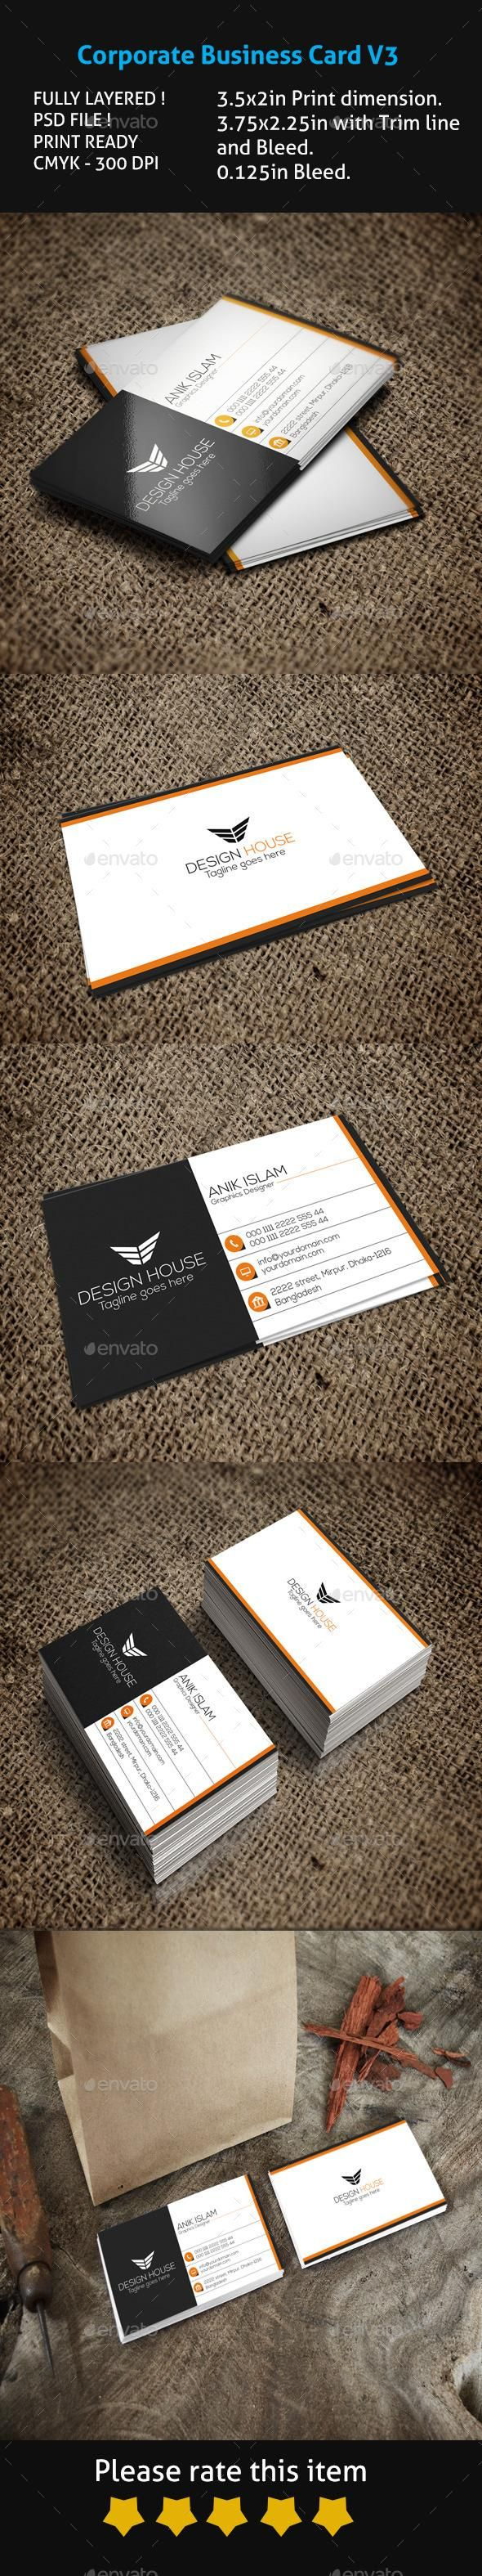 363 best business card design images on pinterest business card corporate business card v3 reheart Image collections